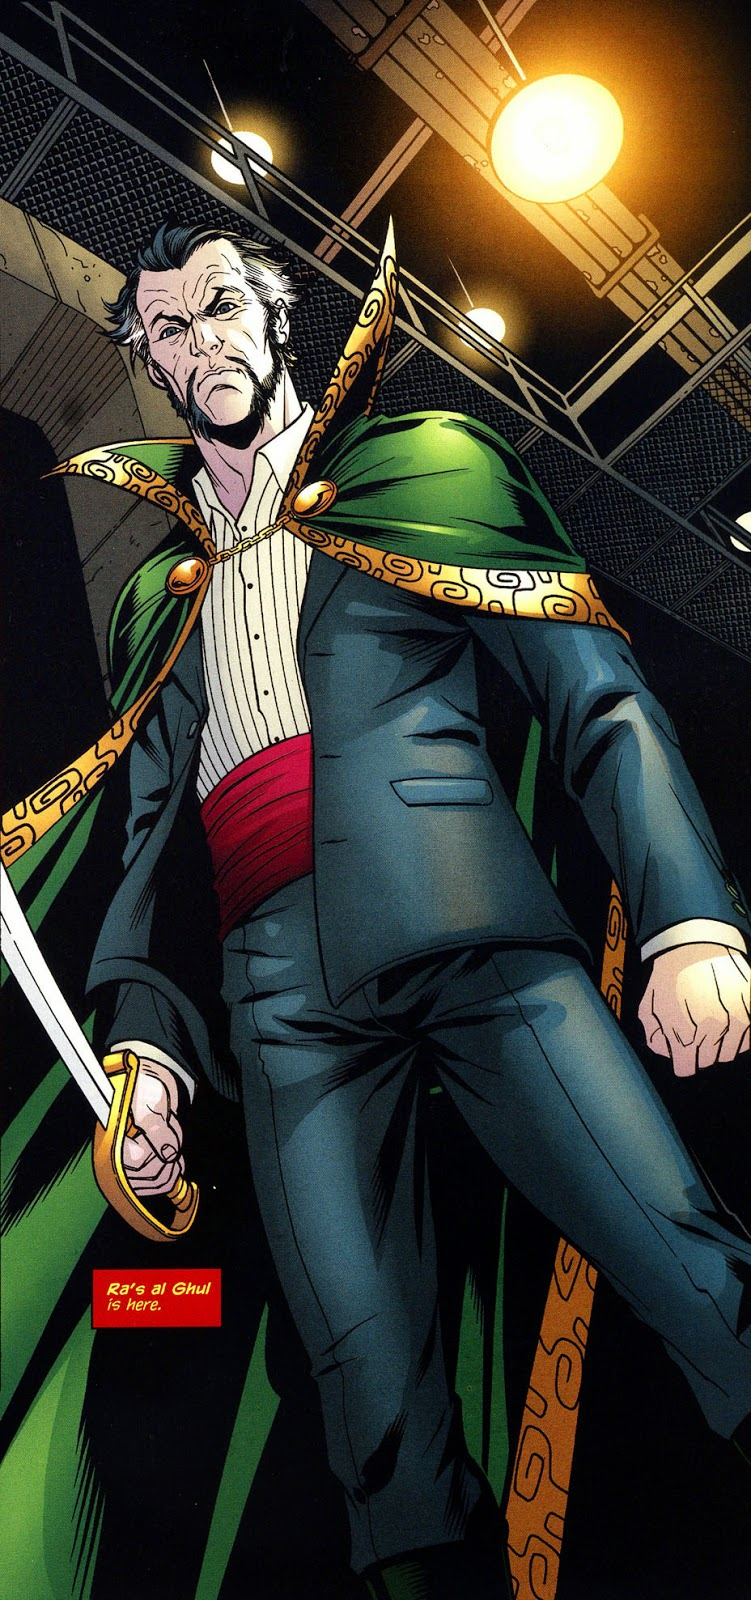 ras al ghul comic books